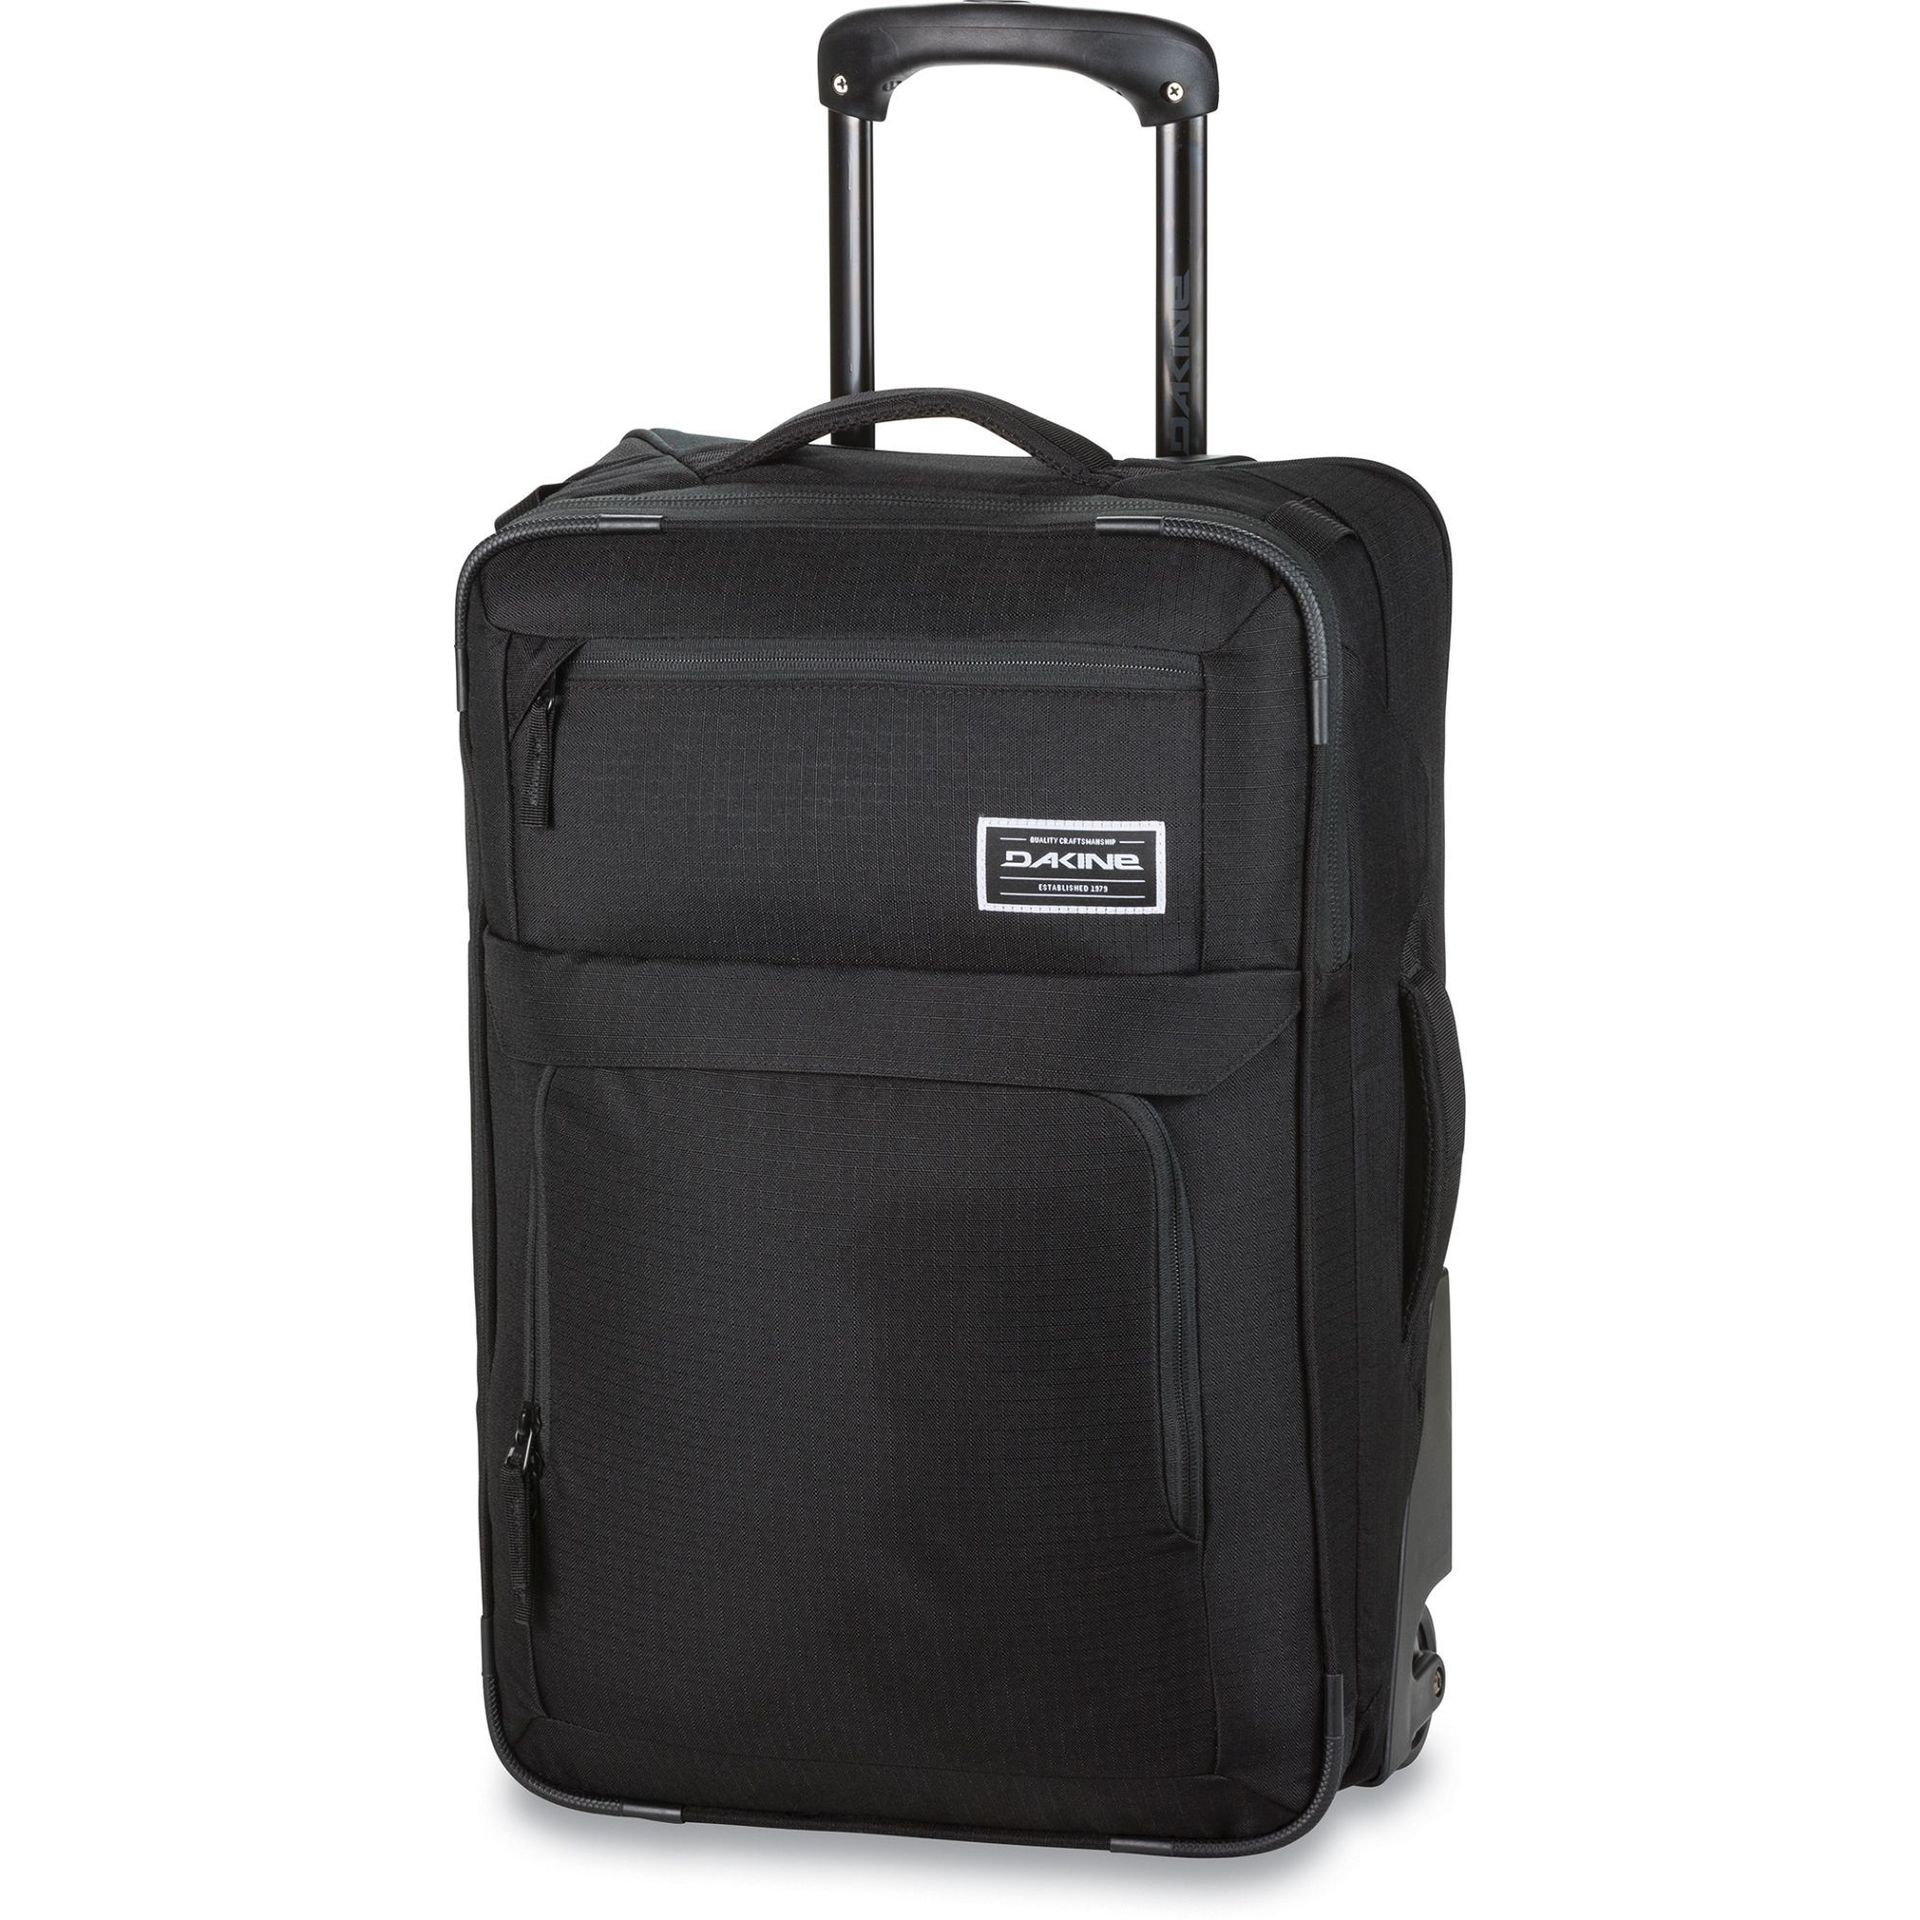 TORBA PODRÓŻNA DAKINE CARRY ON ROLLER 40 L 1